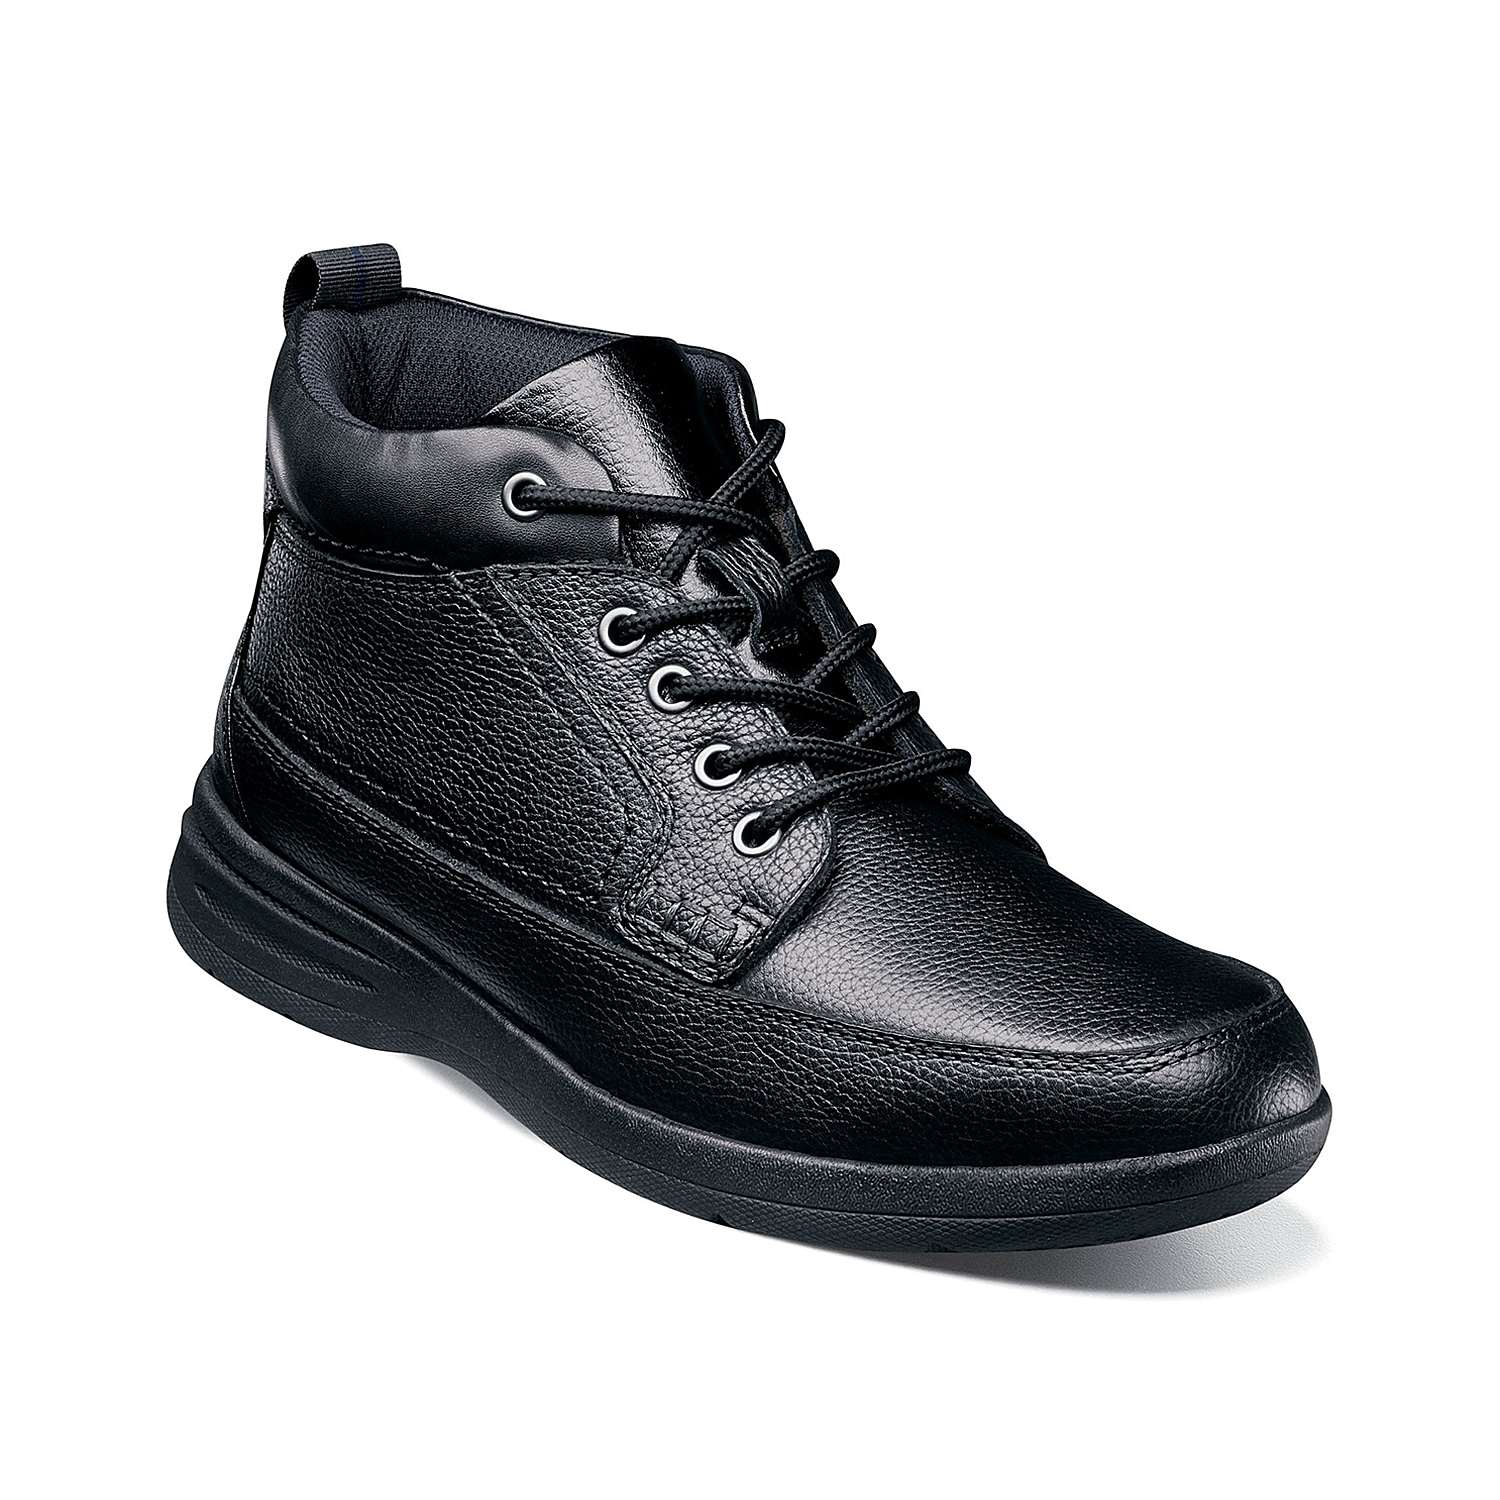 The Cam boot from Nunn Bush is so comfortable, you\\\'ll want to rock them every day! Featuring a memory foam footbed with a Comfort Gel heel pod, this ankle boot will provide optimum support.